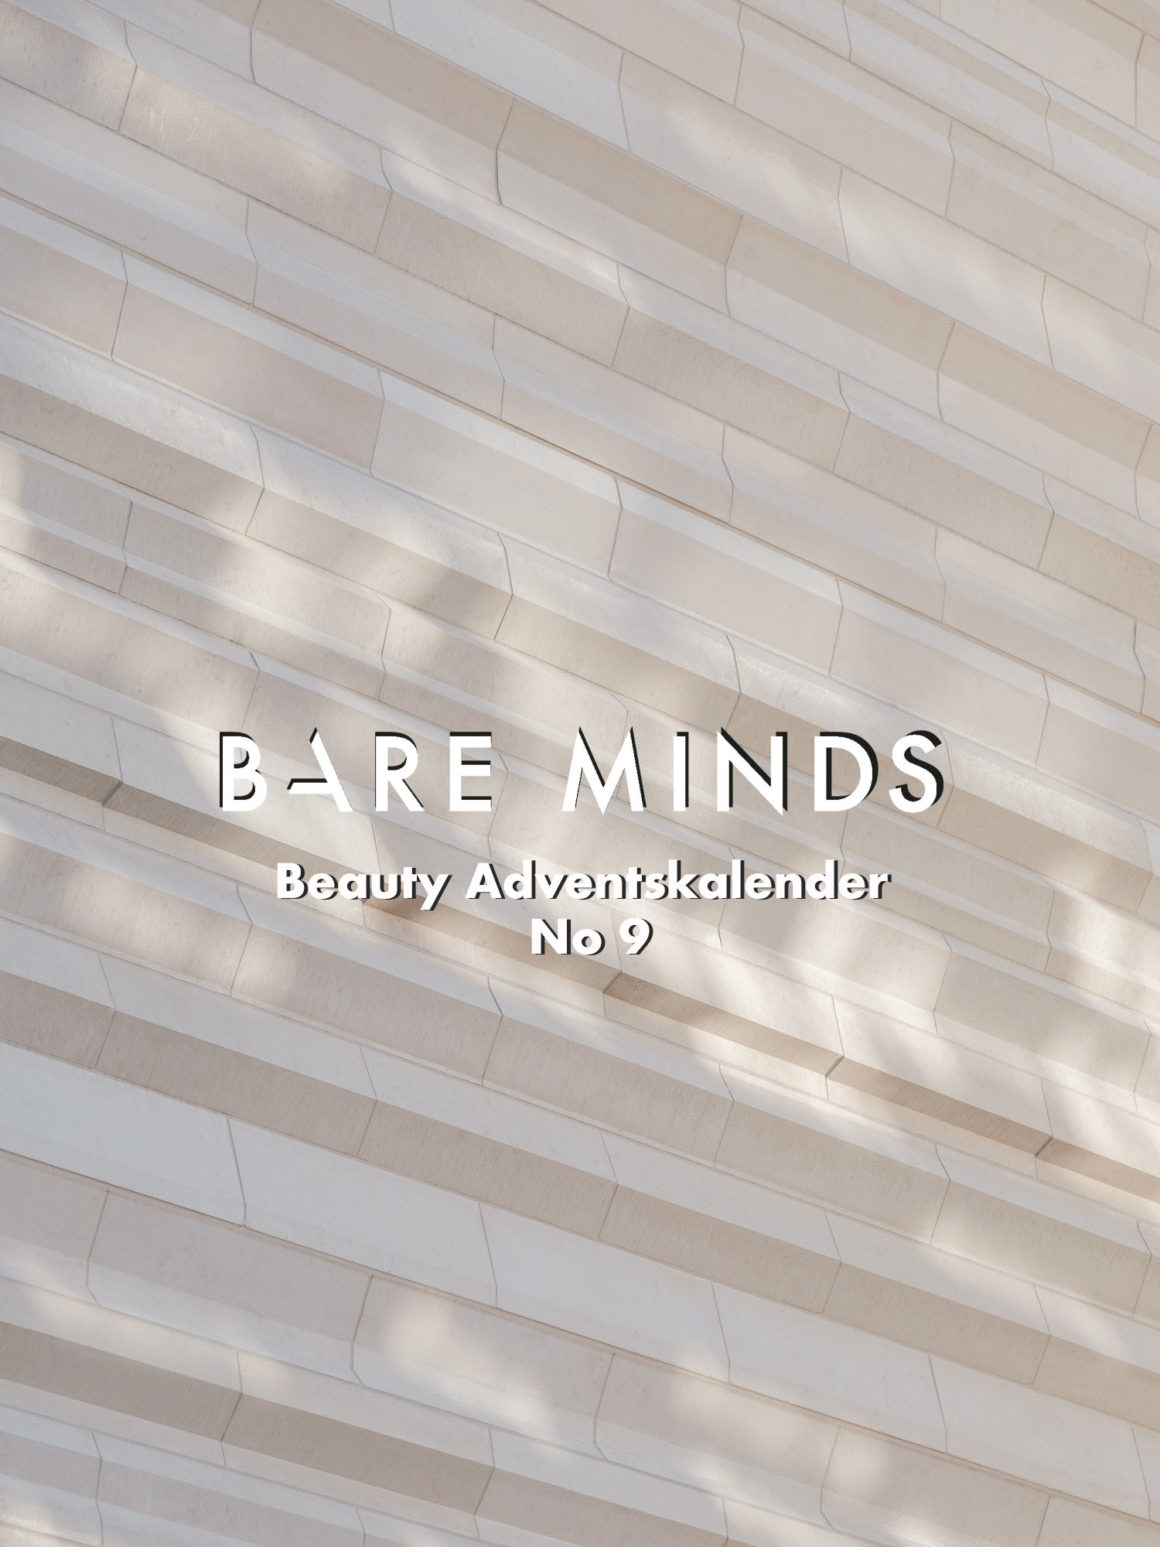 Bare Minds Beauty Adventskalender samuel-zeller-694260-unsplash